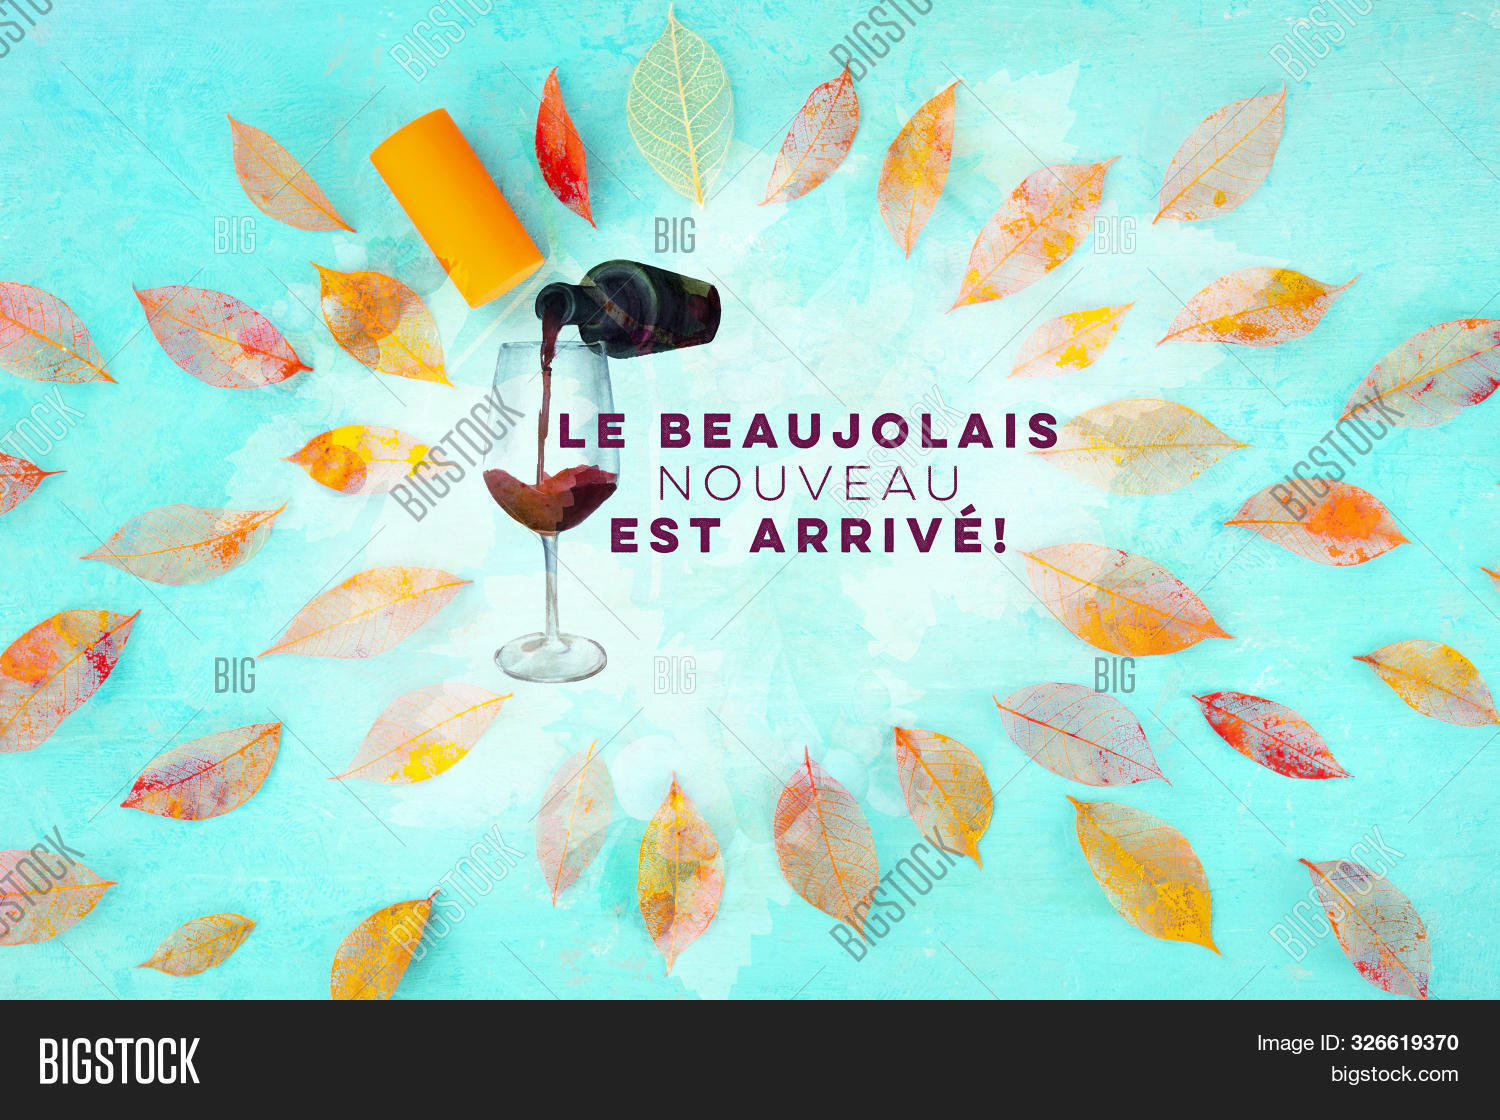 Beaujolais Nouveau Poster Design. The New Wine Has Arrived. With Watercolor Glass And Bottle, Autumn